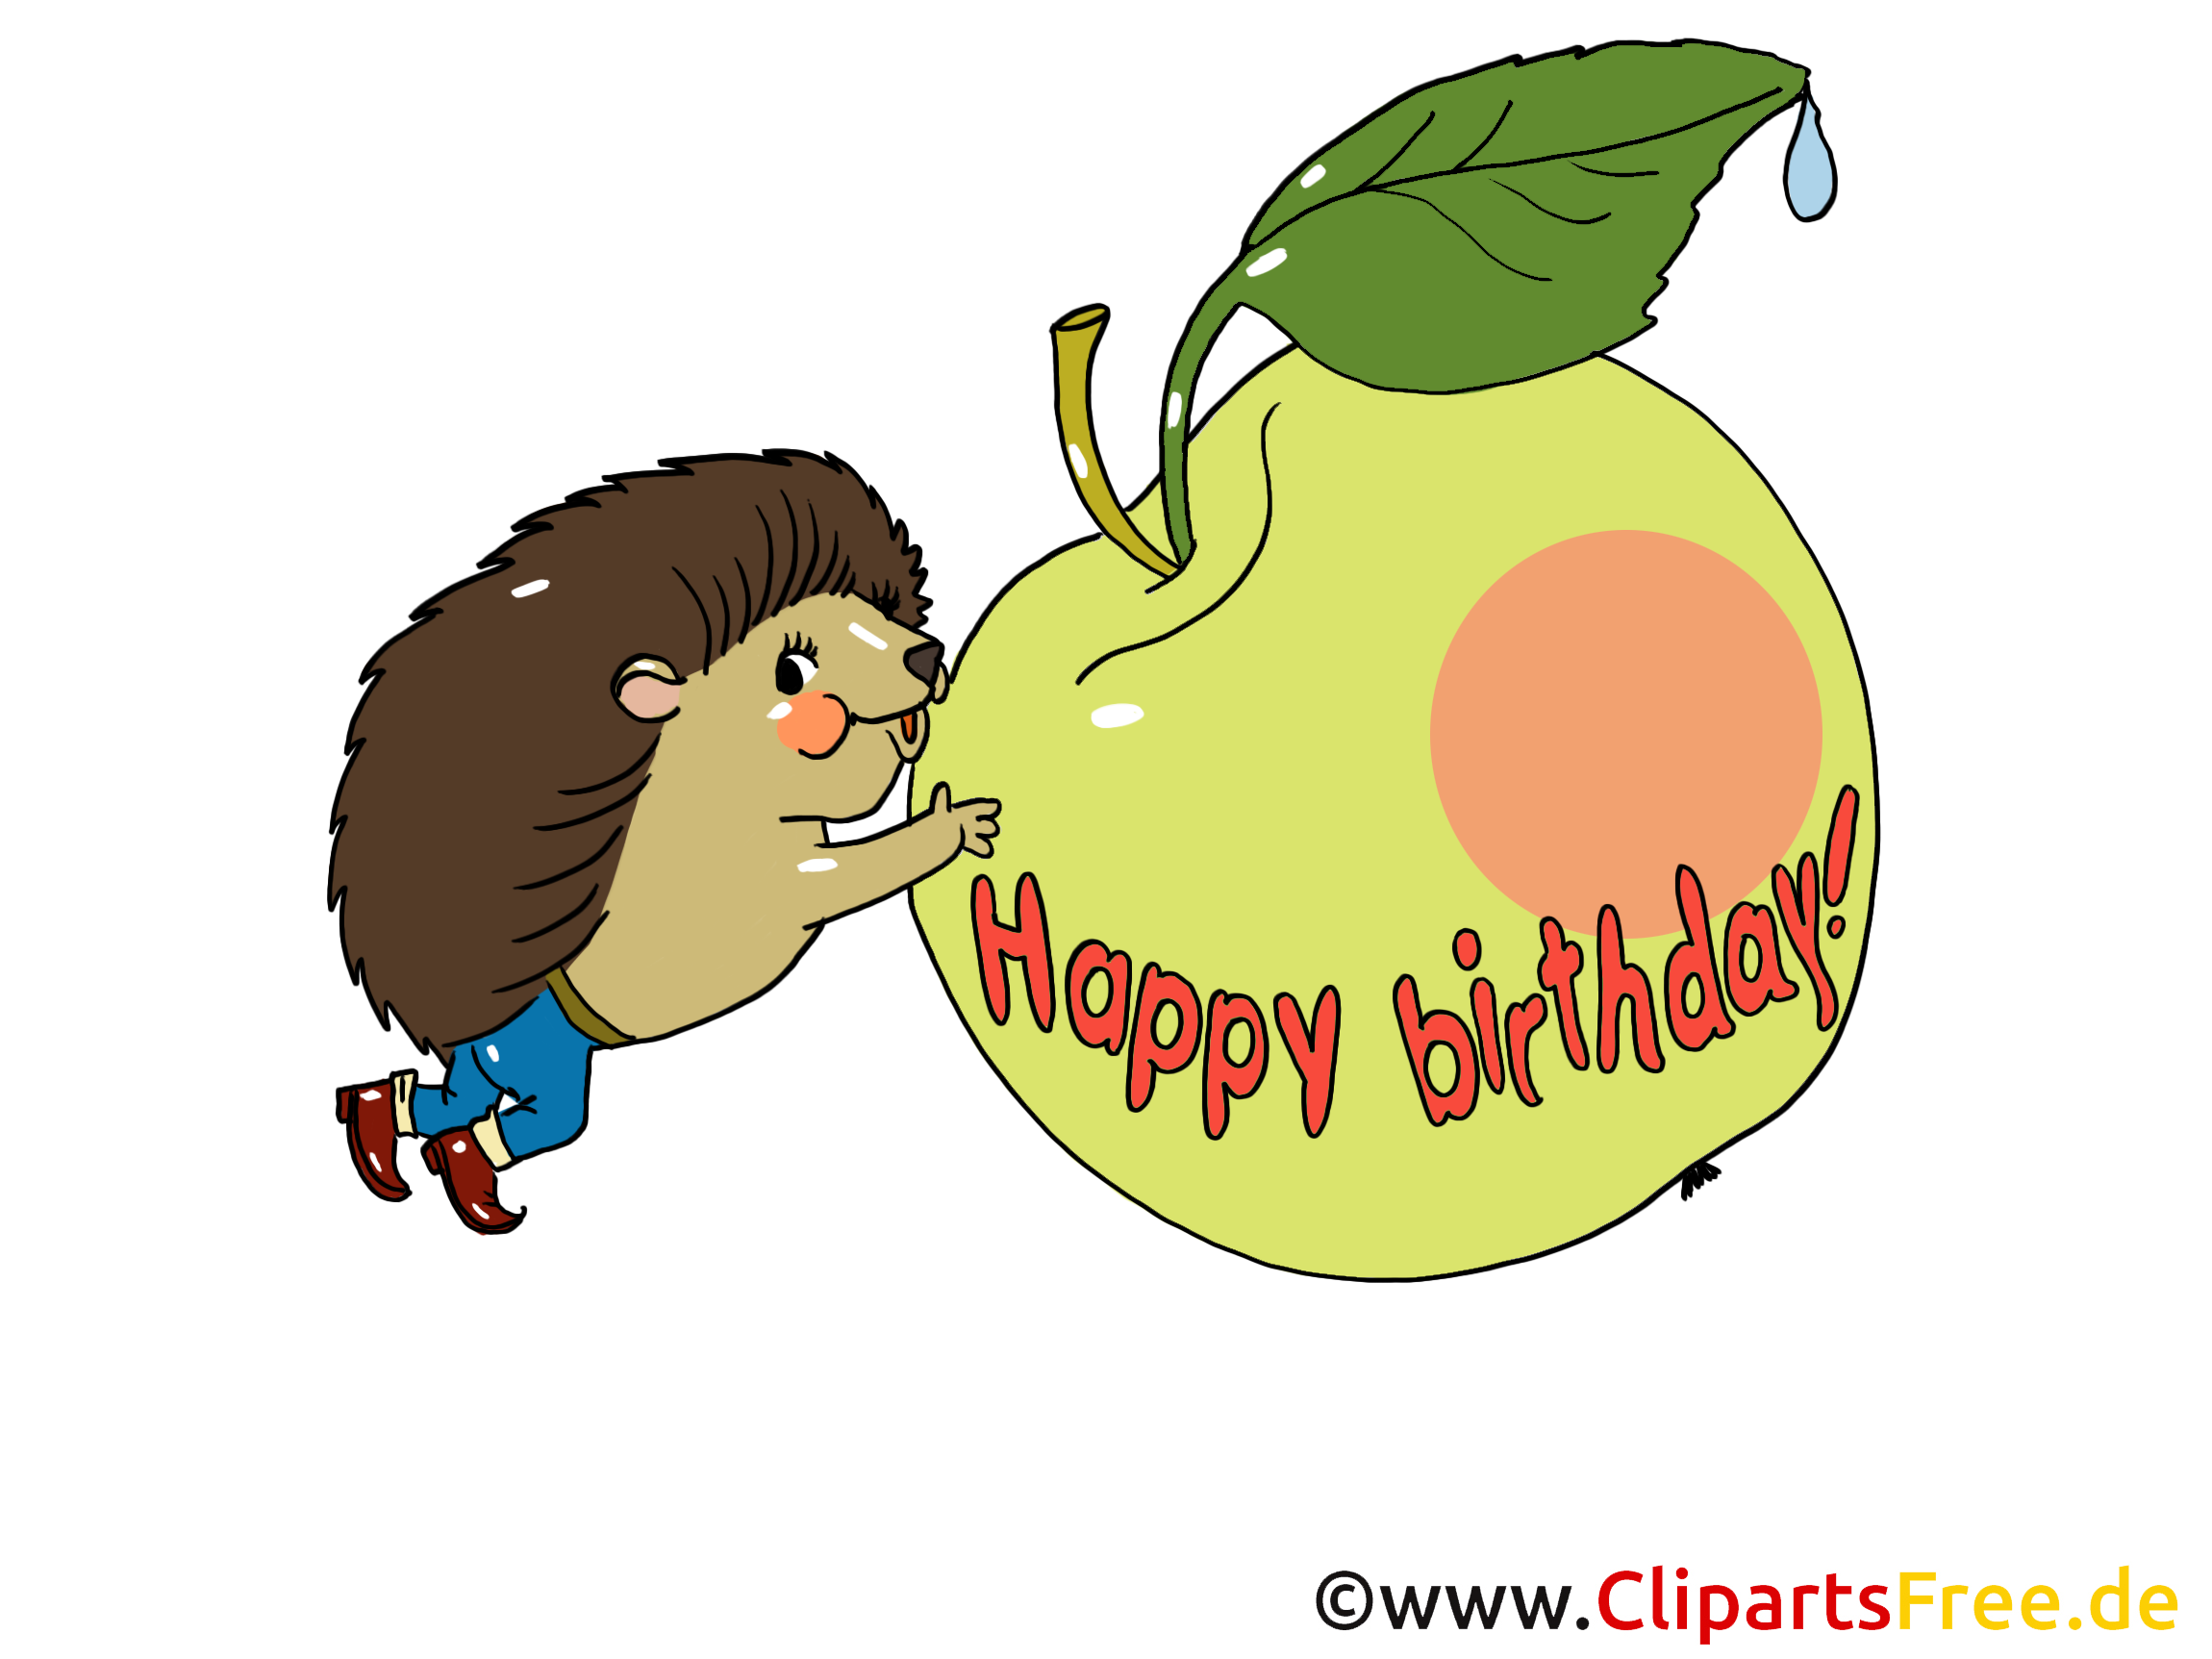 Clip Art Hedgehog and Apple